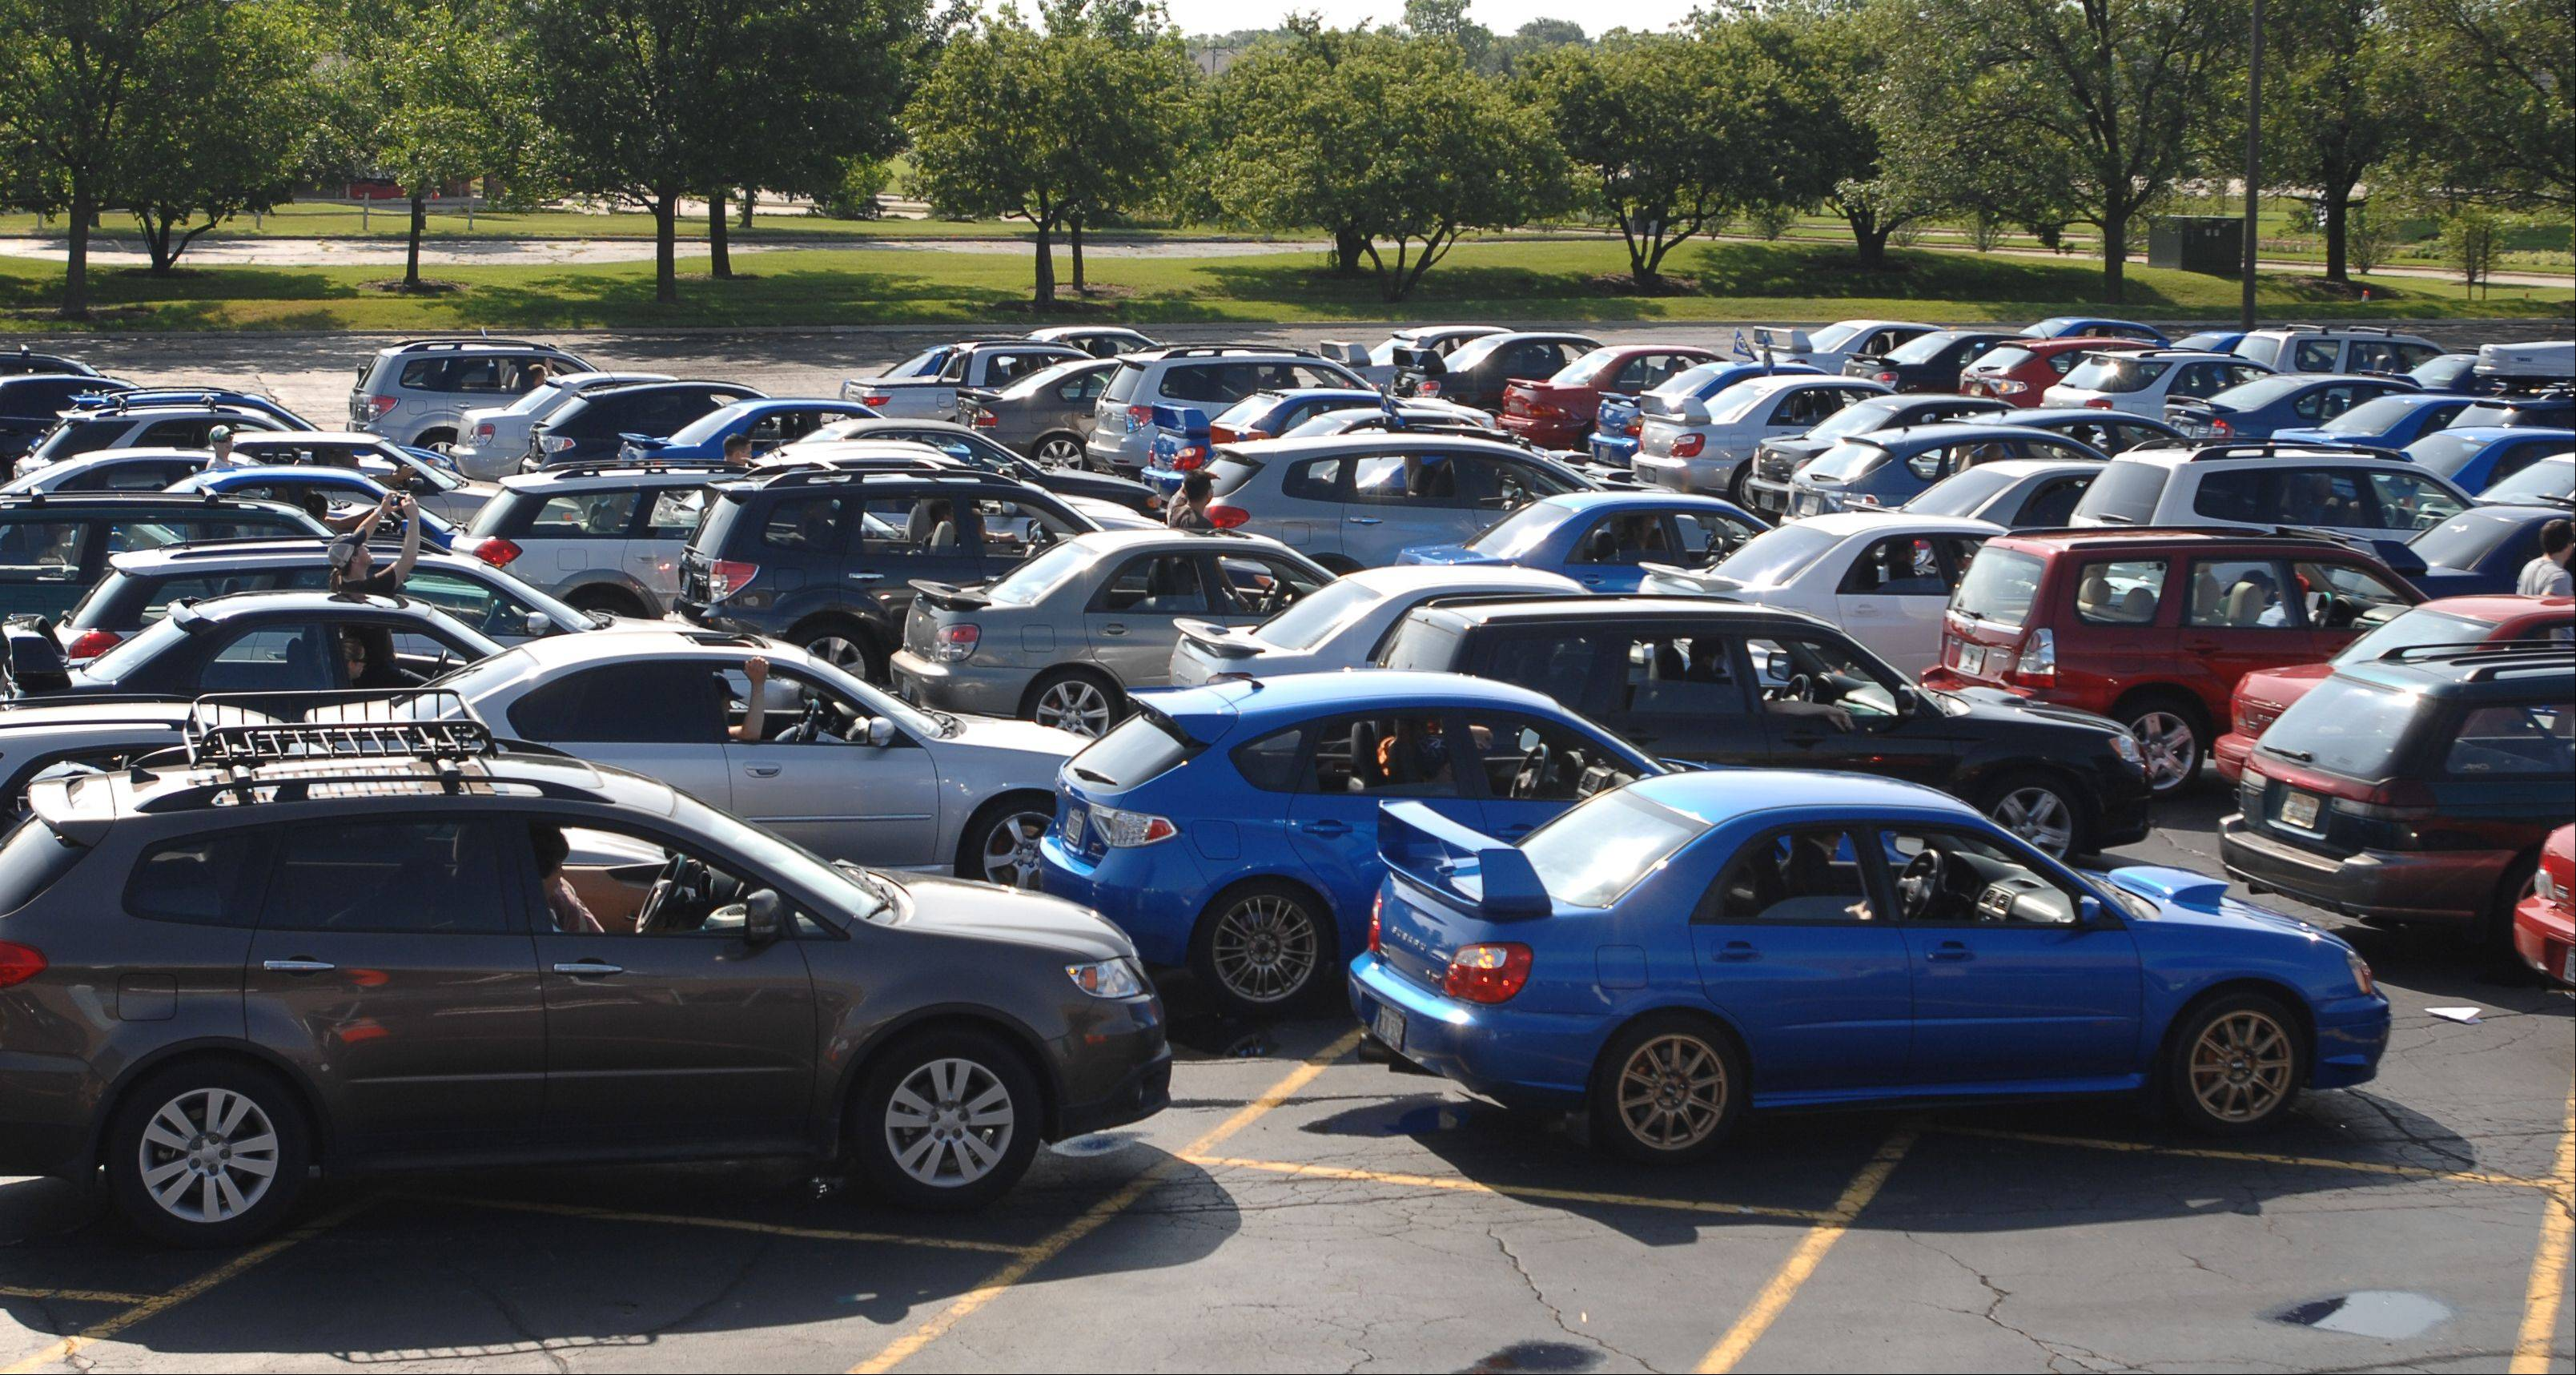 Itasca hopes to host the largest parade of Subarus Saturday with 500 cars. As of Wednesday, 365 motorists were registered.